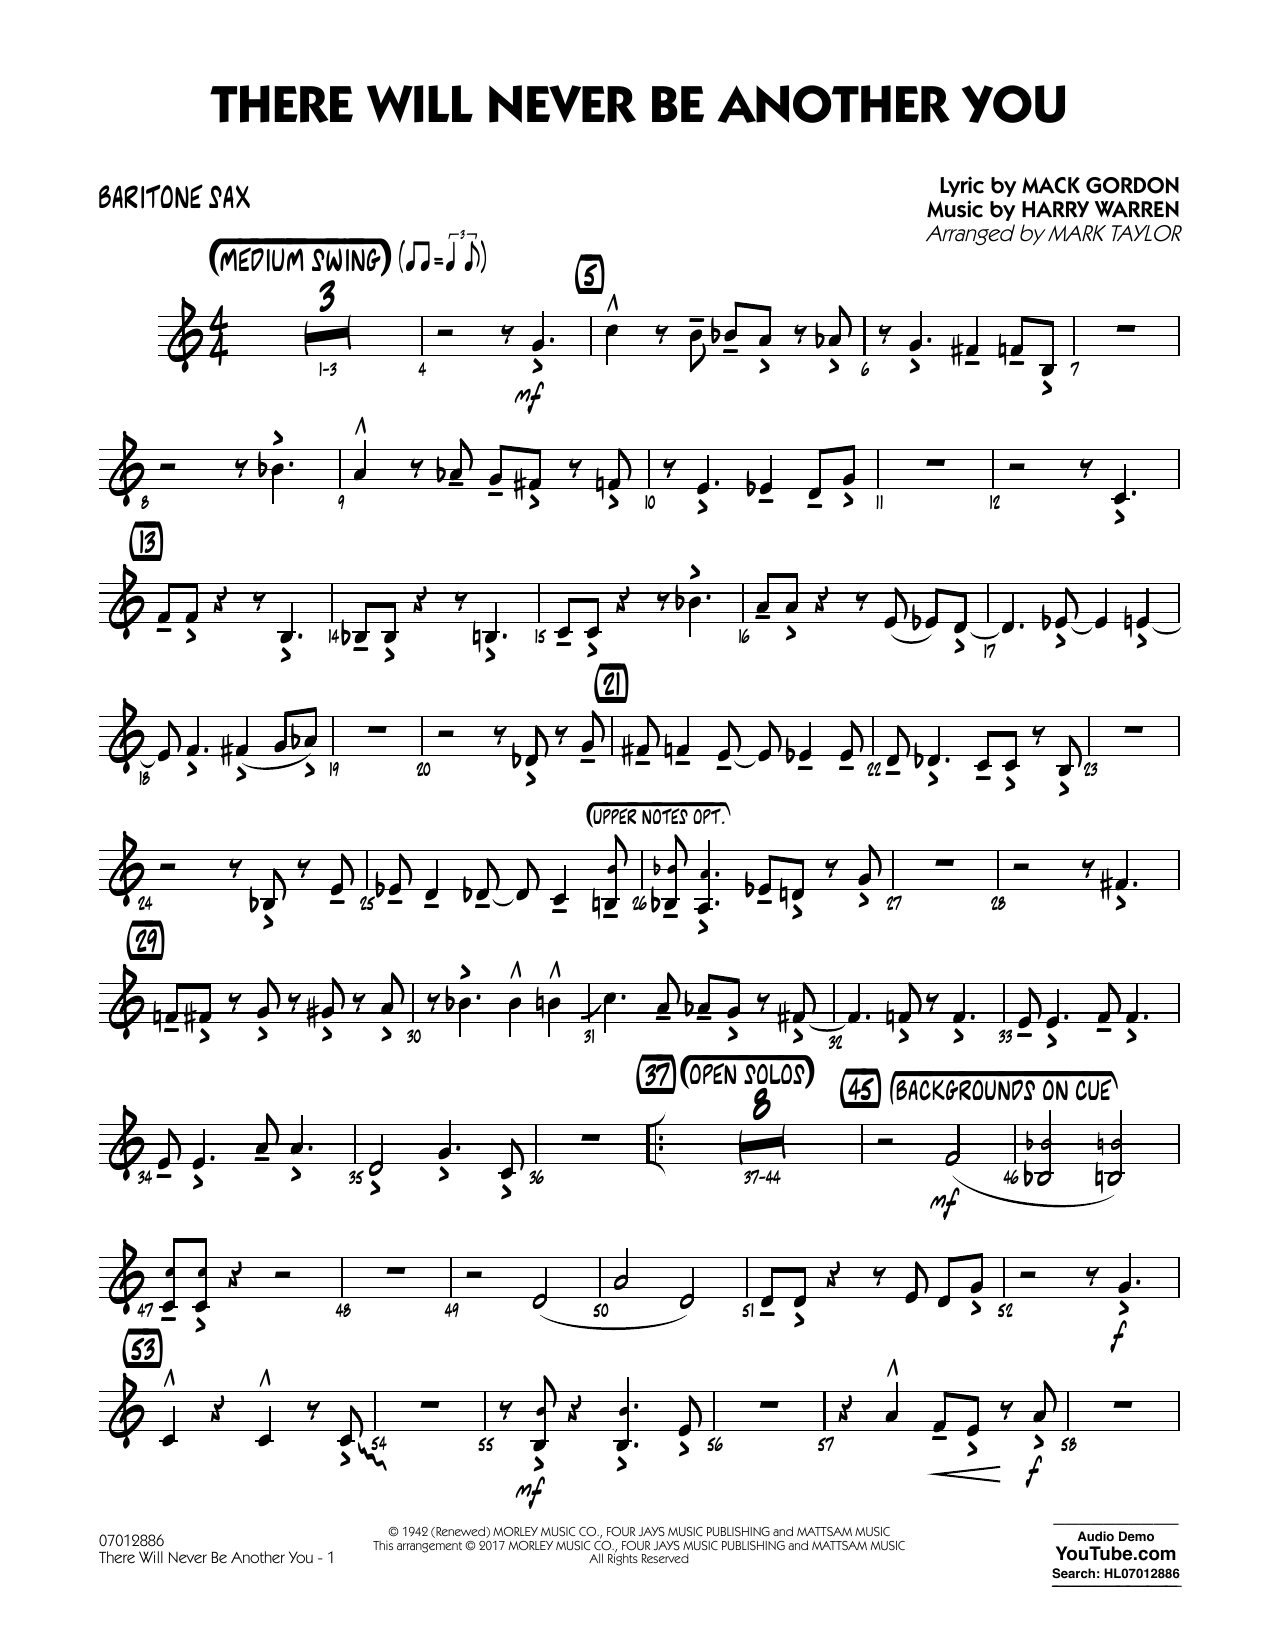 There Will Never Be Another You - Baritone Sax Sheet Music